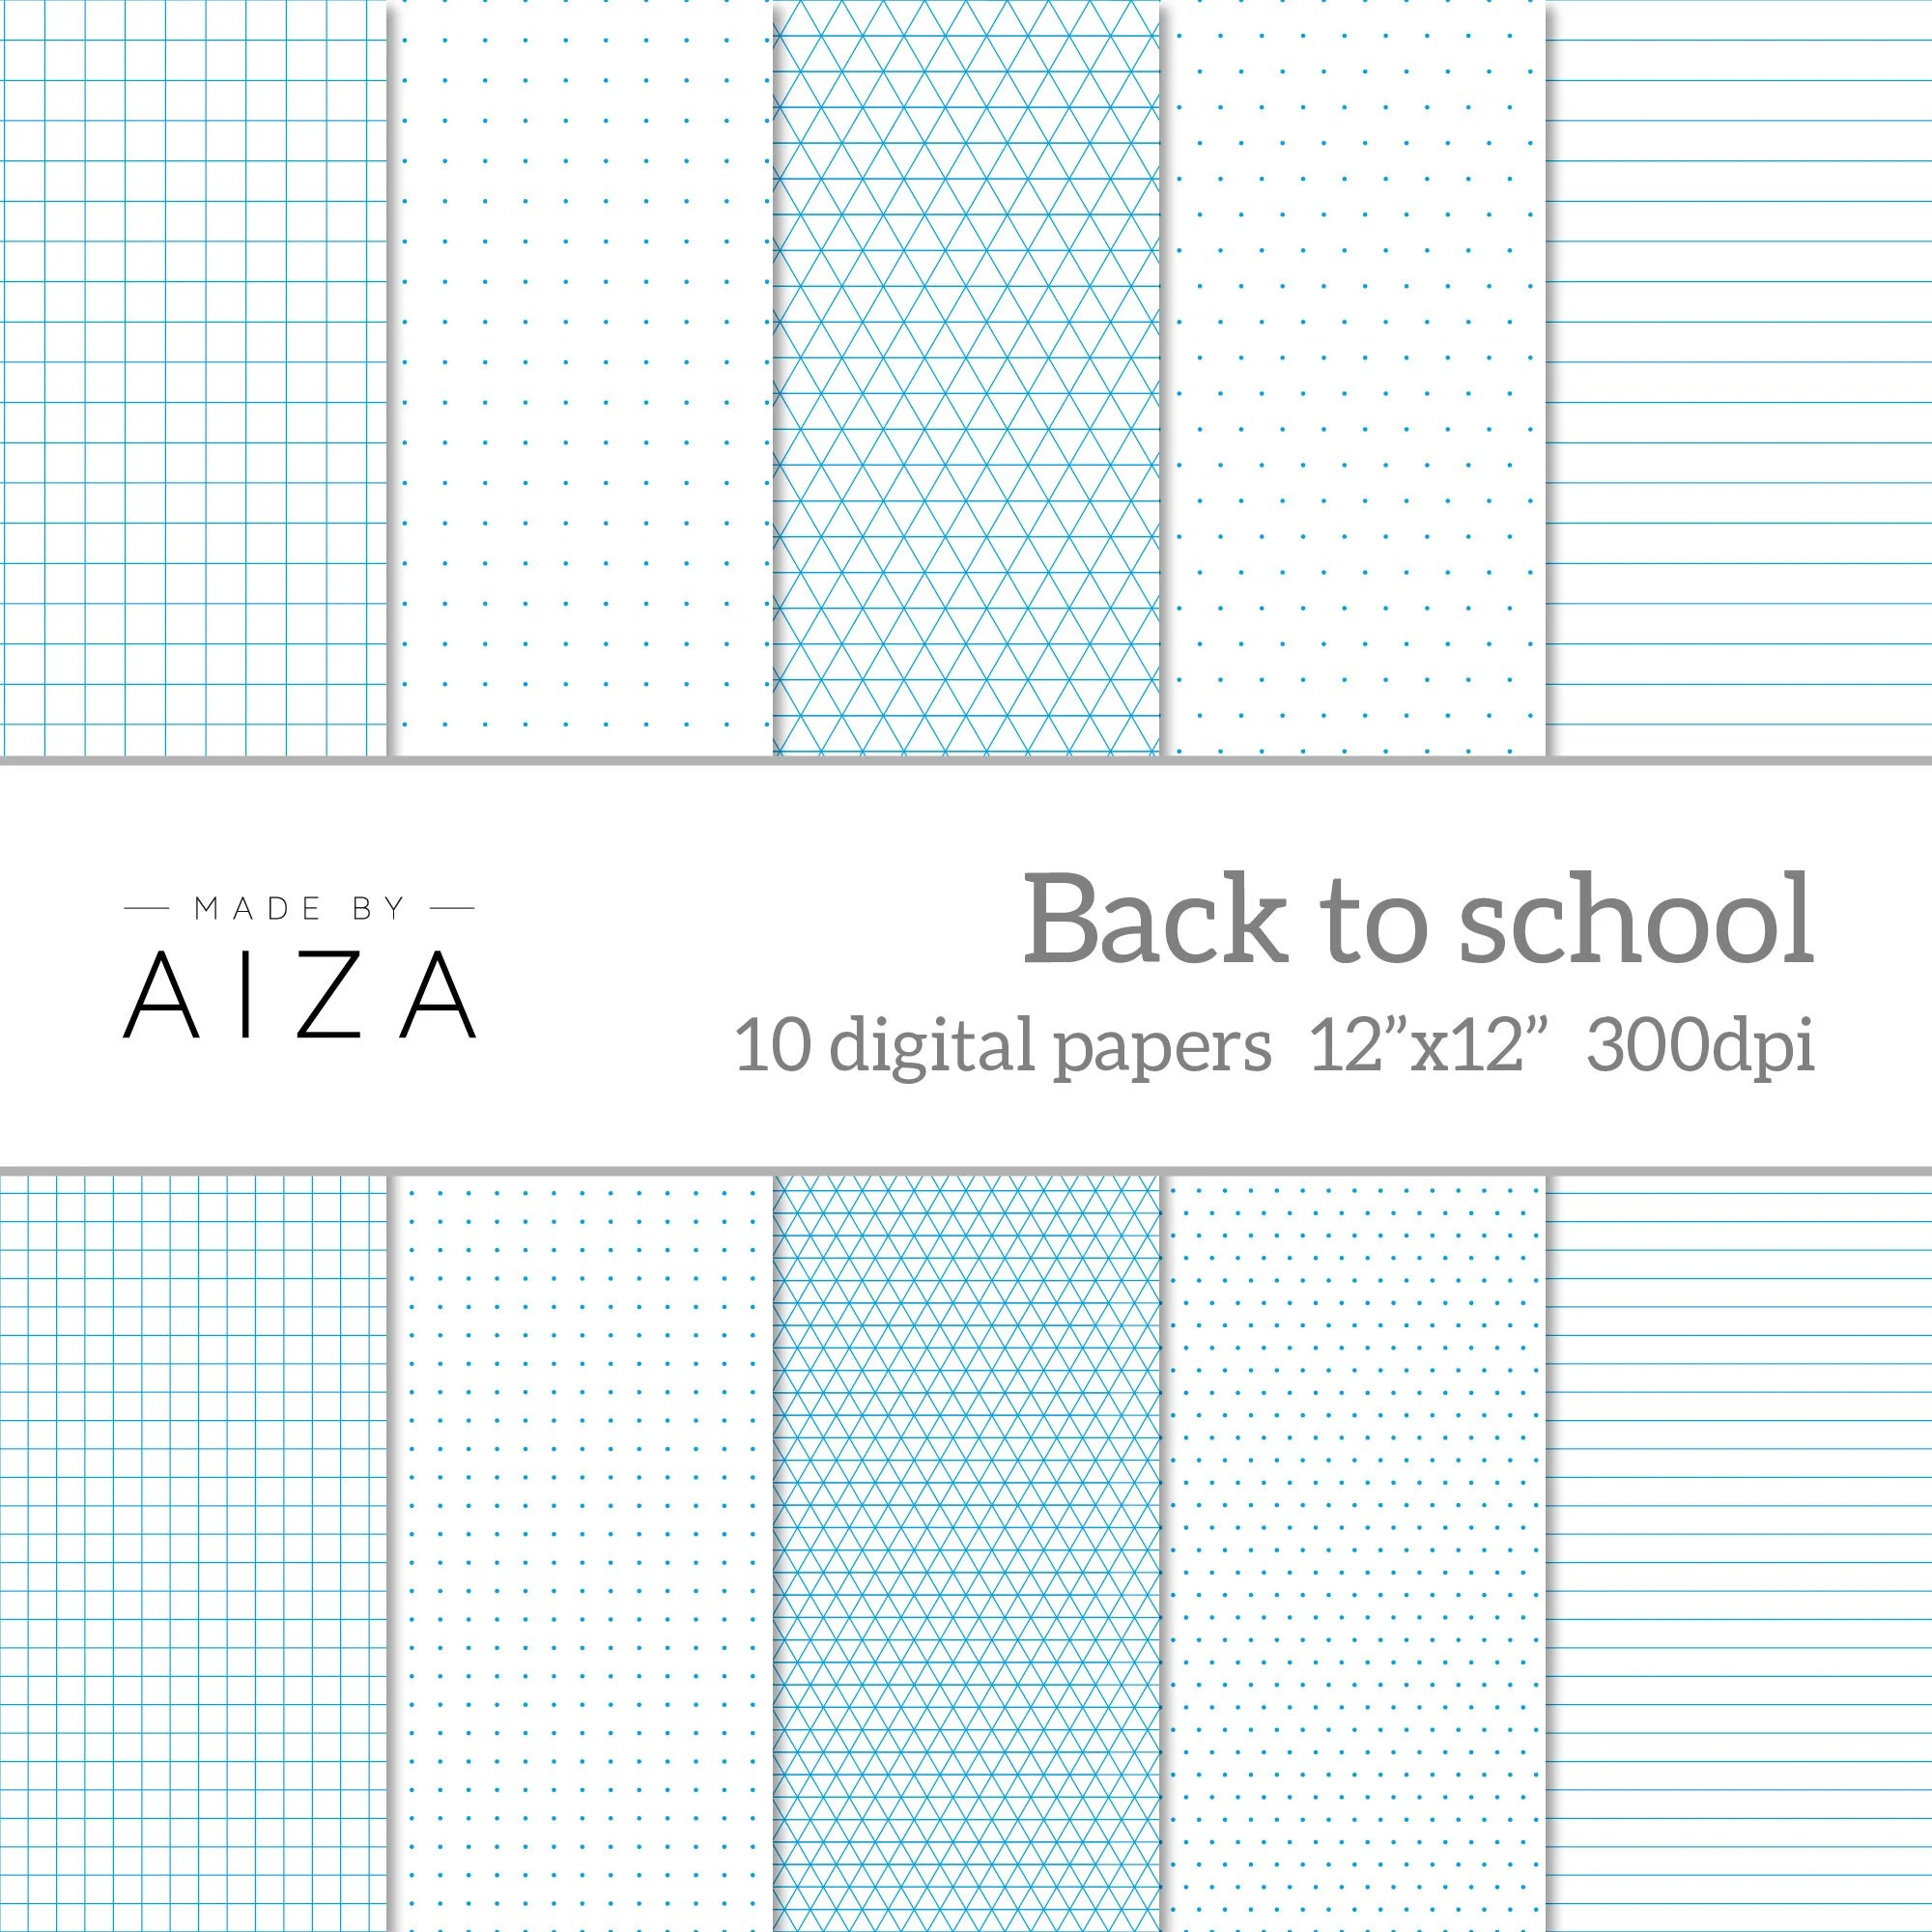 Back to school Digital Paper exercise book grid paper - digital graph paper